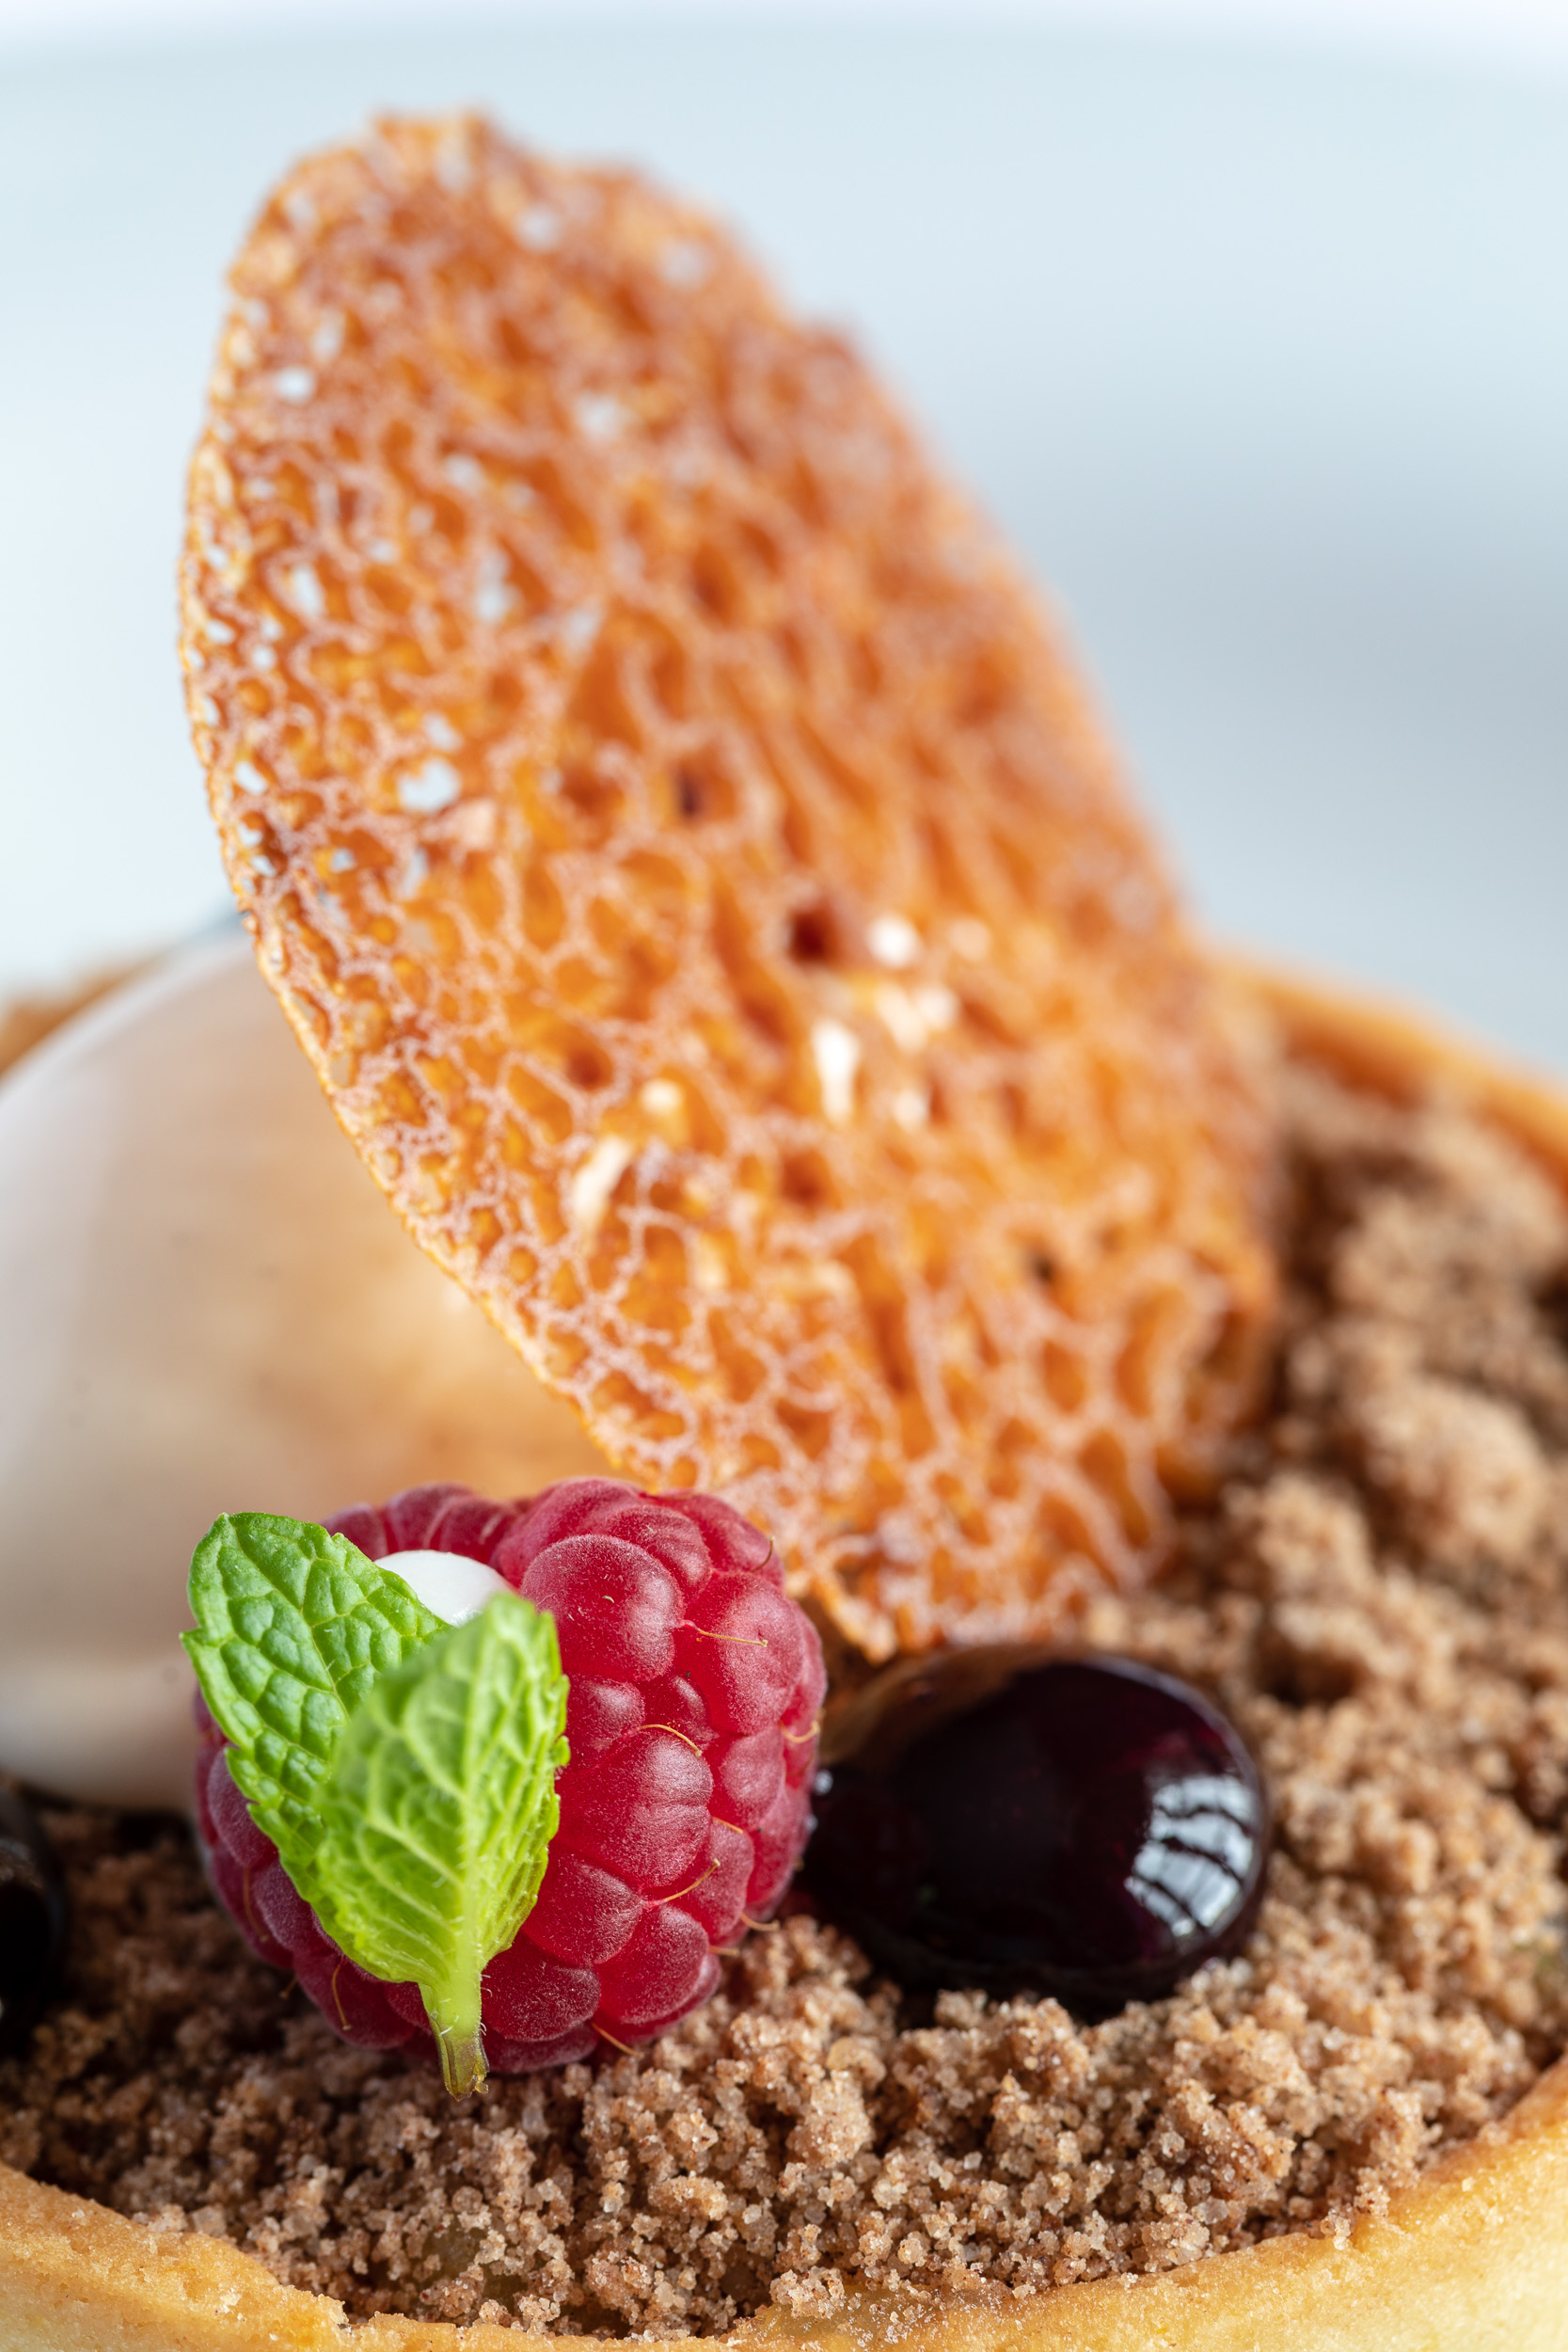 Food Photography at Restaurant in Wiltshire